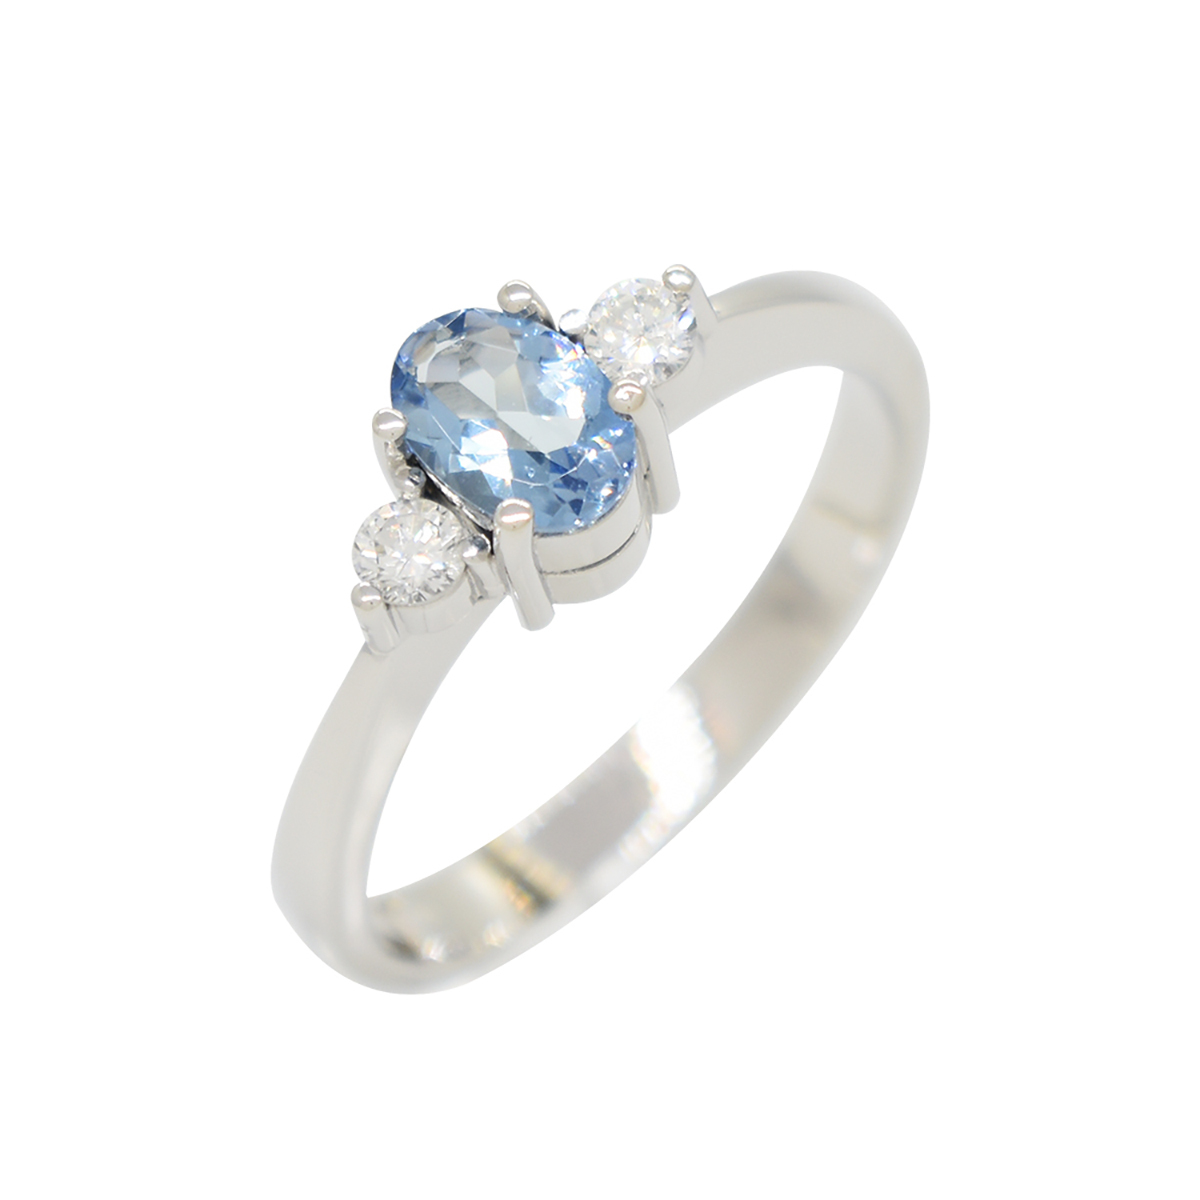 3-stones-ring-with-oval-shape-aquamarine-and-brilliant-cut-diamonds-in-white-gold